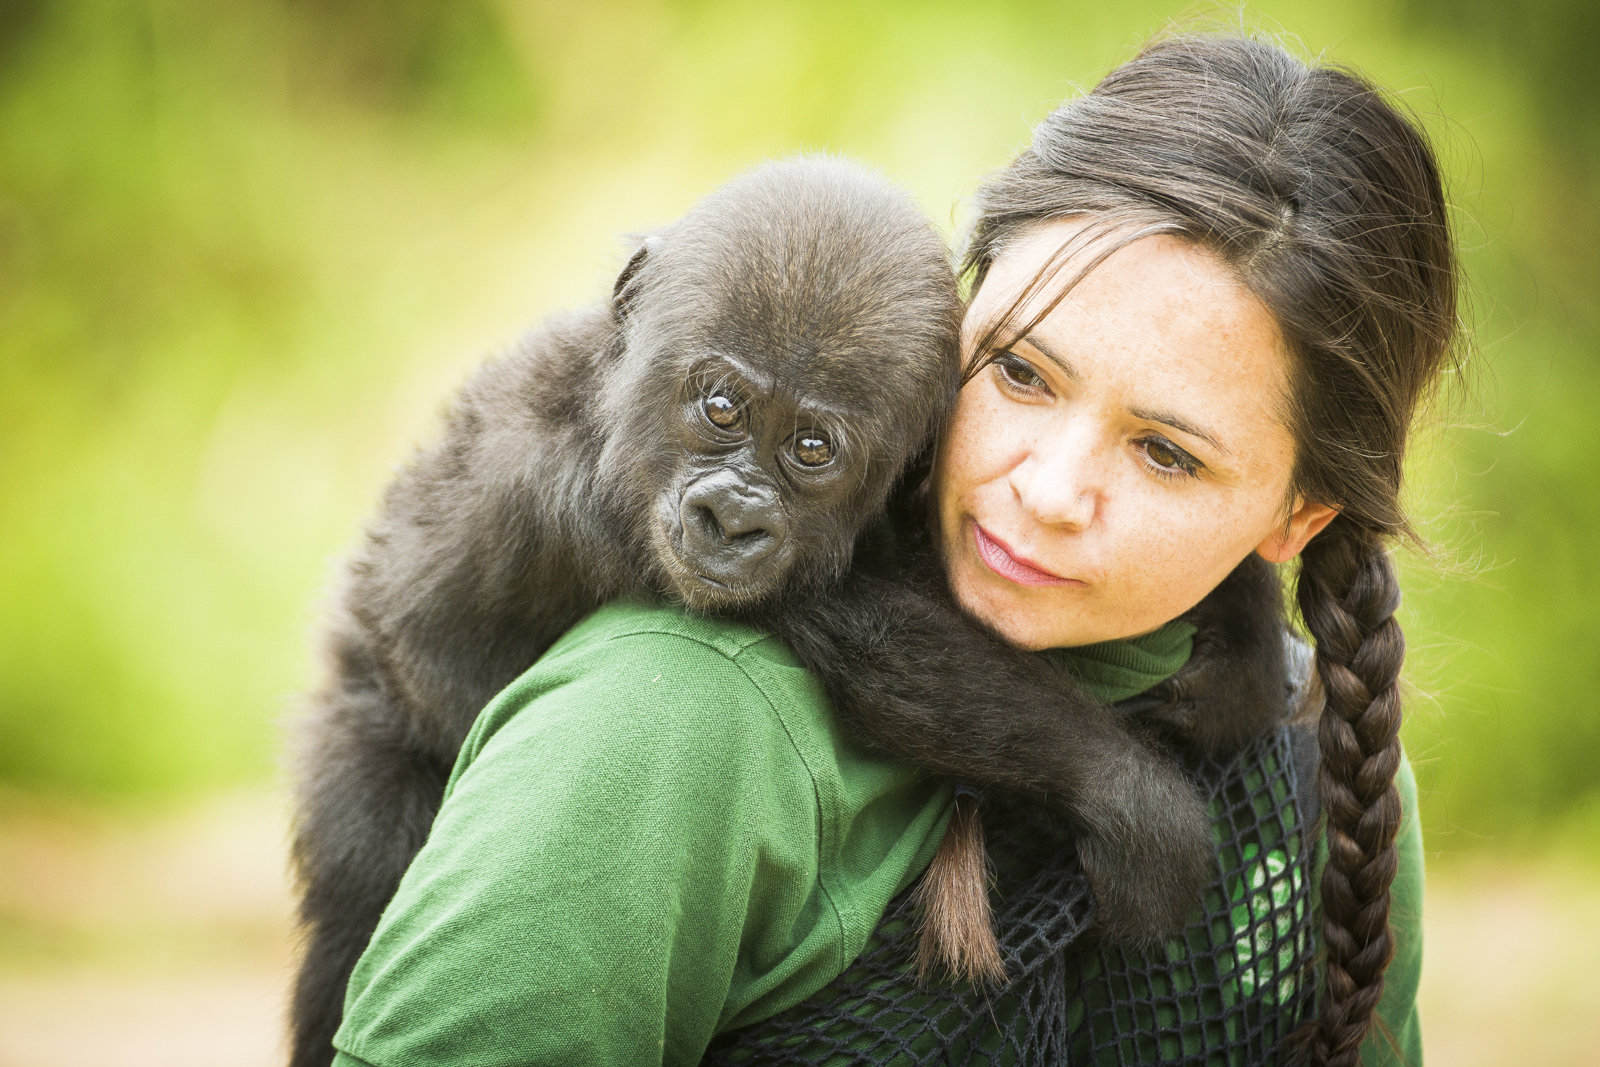 Afia, a six month old Gorilla at Bristol Zoo plays with her keeper Joanne Rudd.